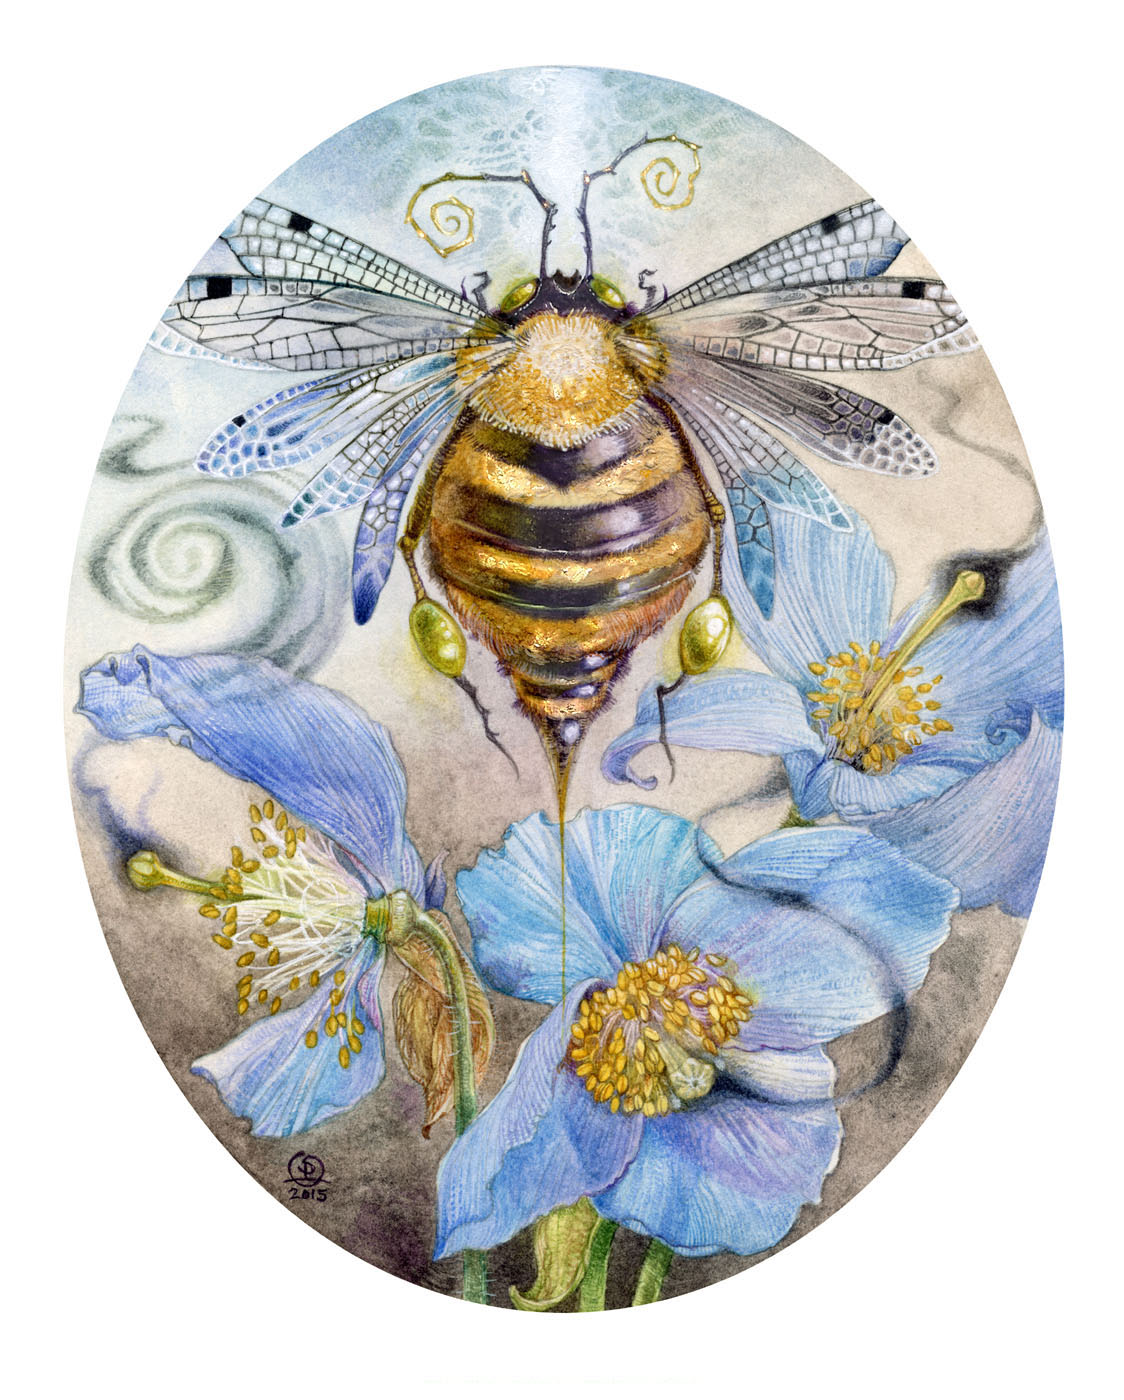 Watercolor painting by Stephanie Law of a bee-like insect among blue poppies